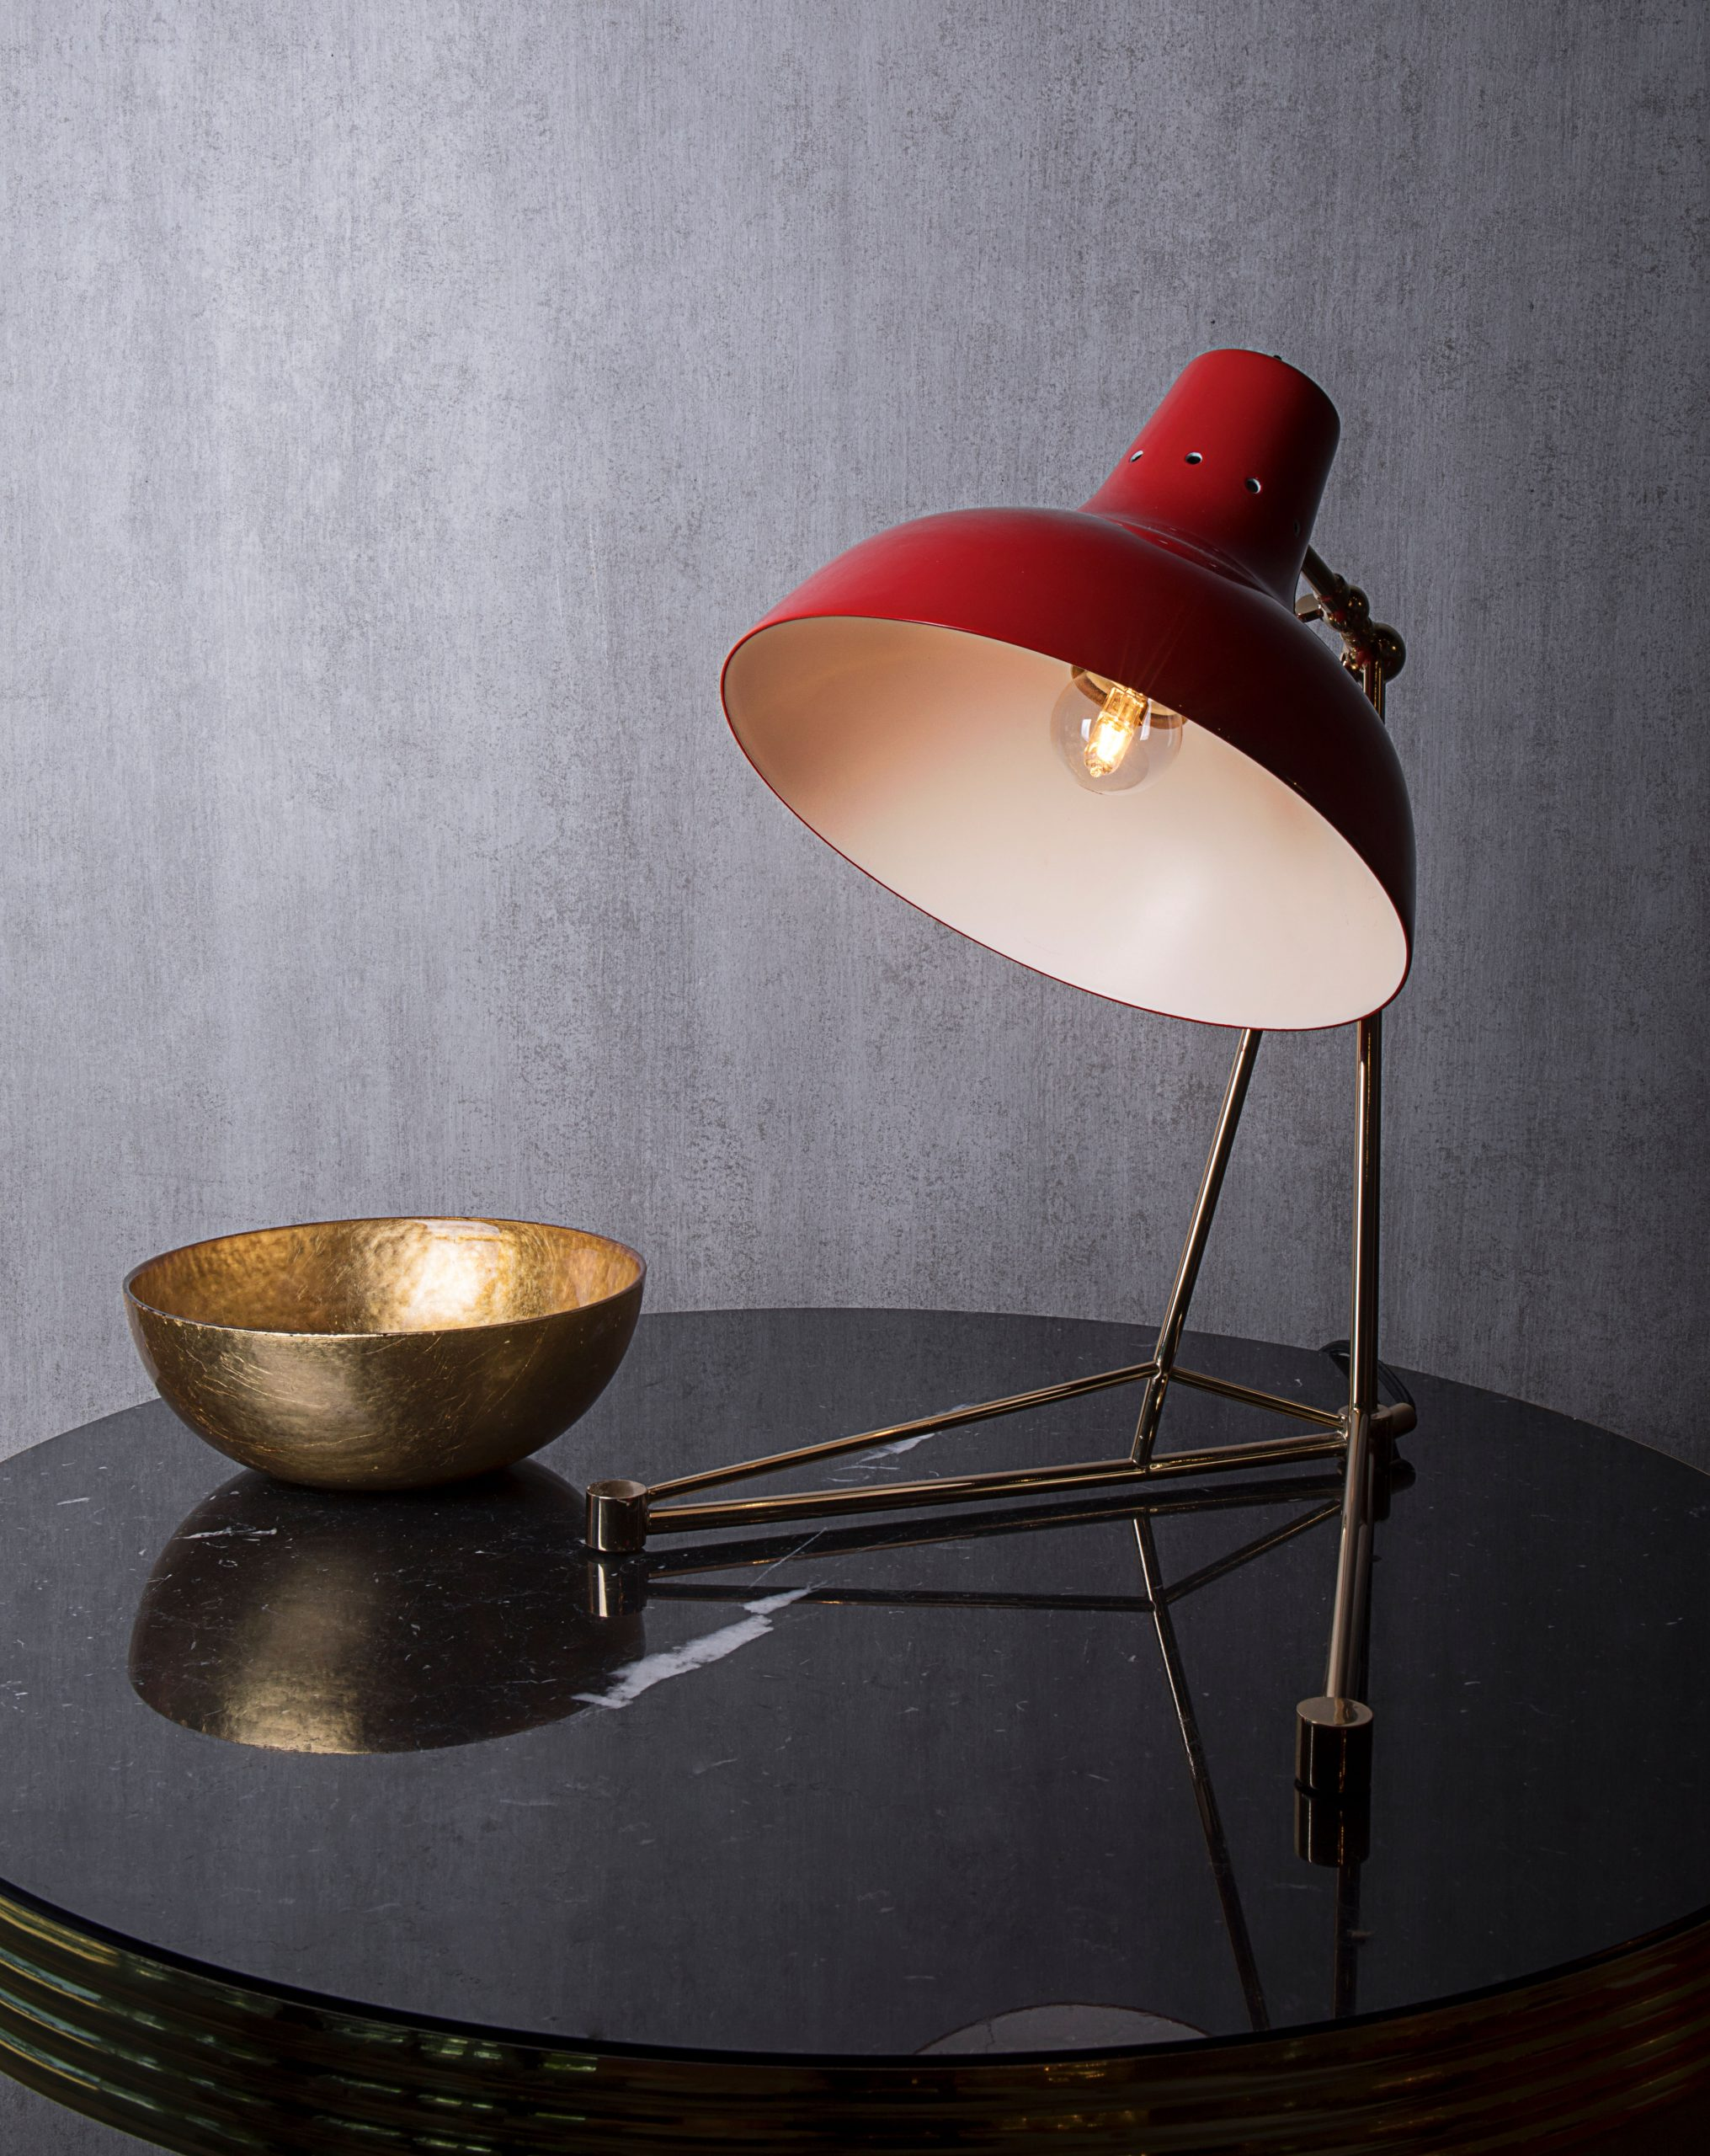 Table Lamp Ideas To Enrich Your Interior Design